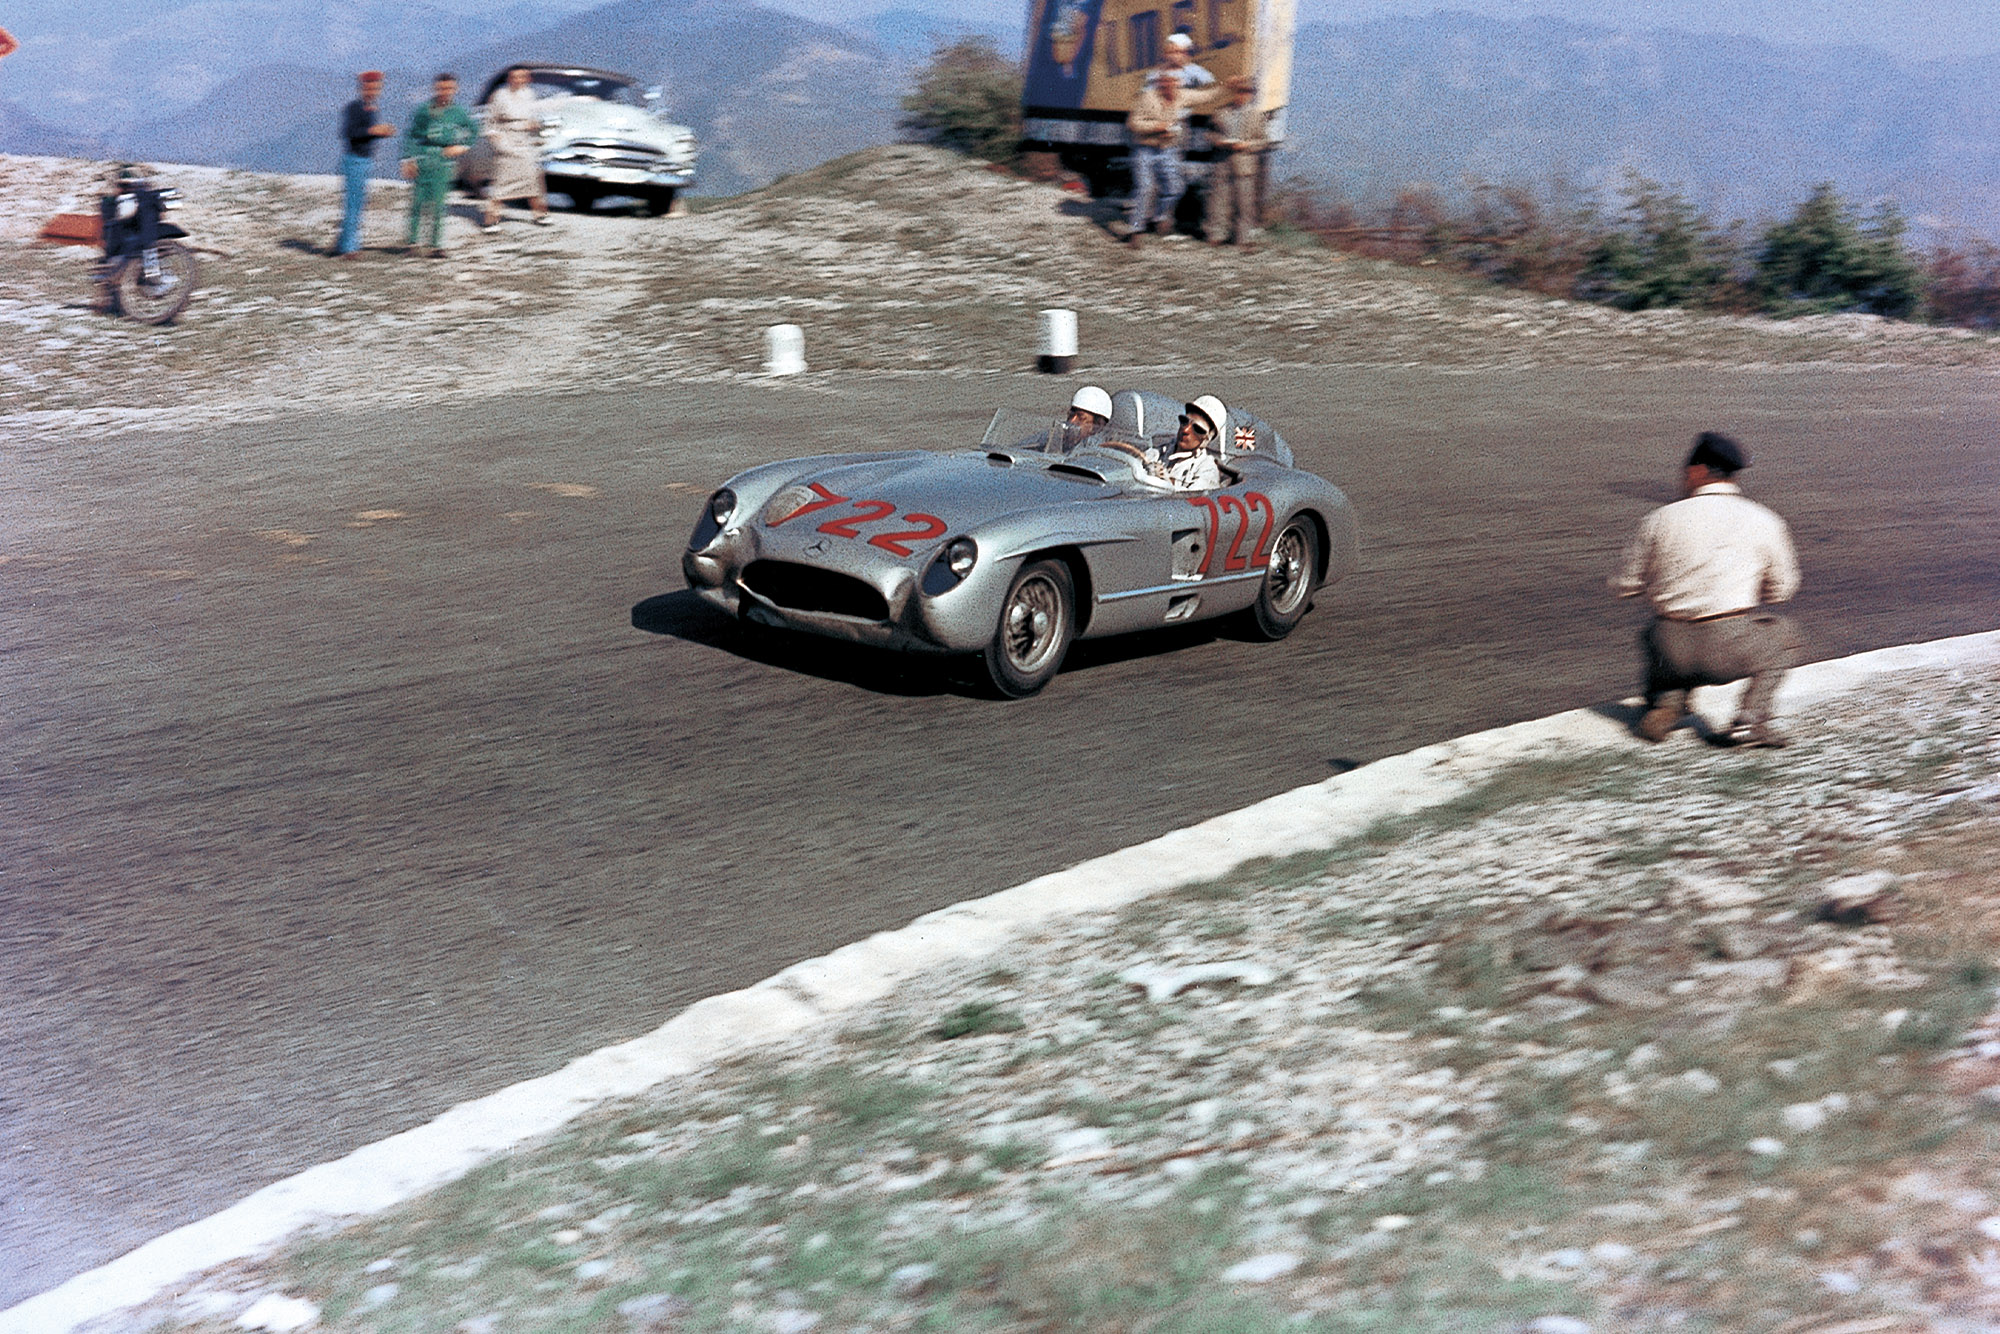 Stirling Moss at high speed in the 1955 Mille Miglia